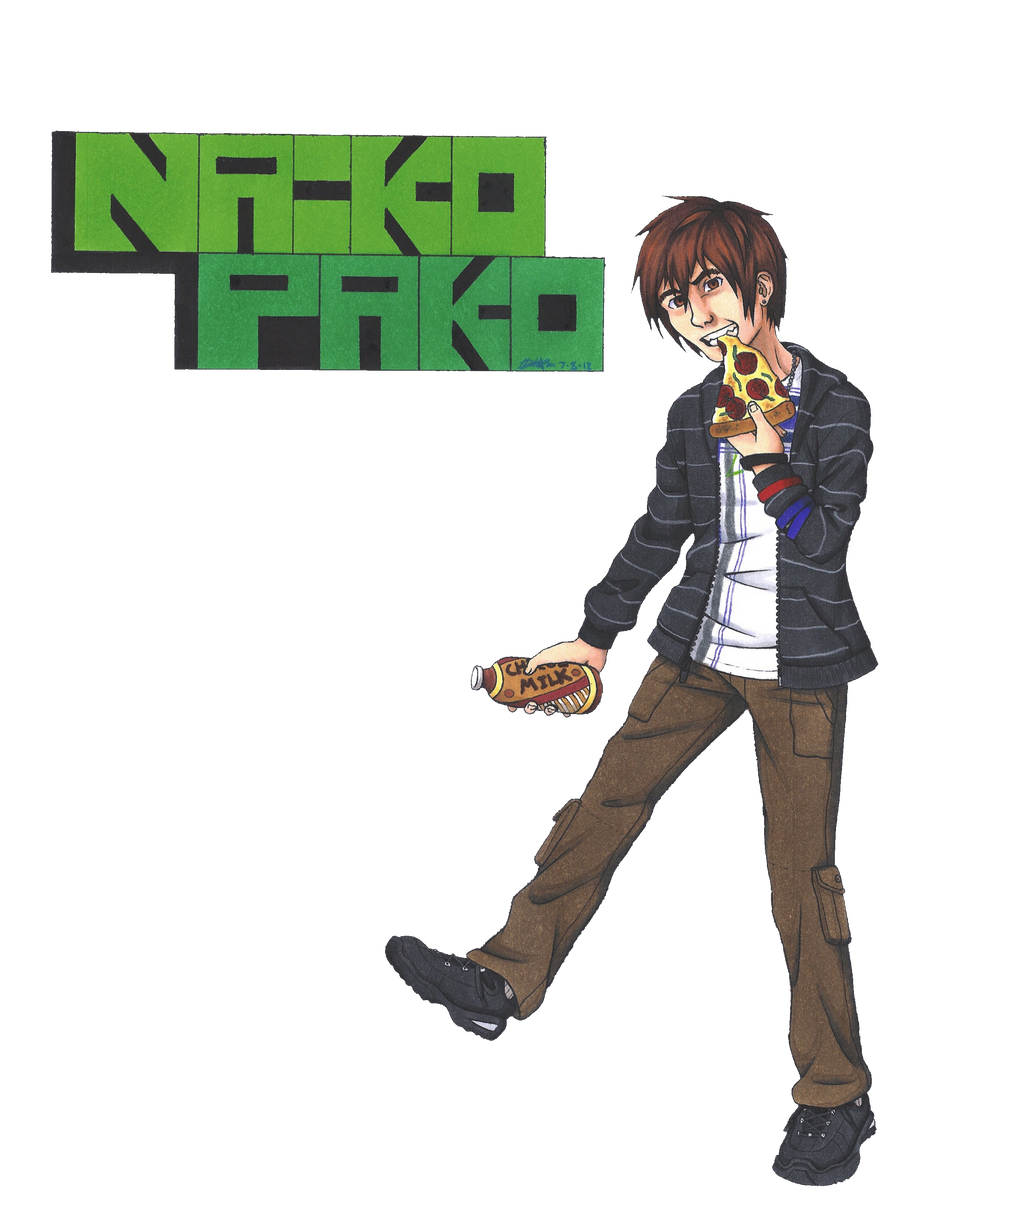 NaikoPako's Profile Picture